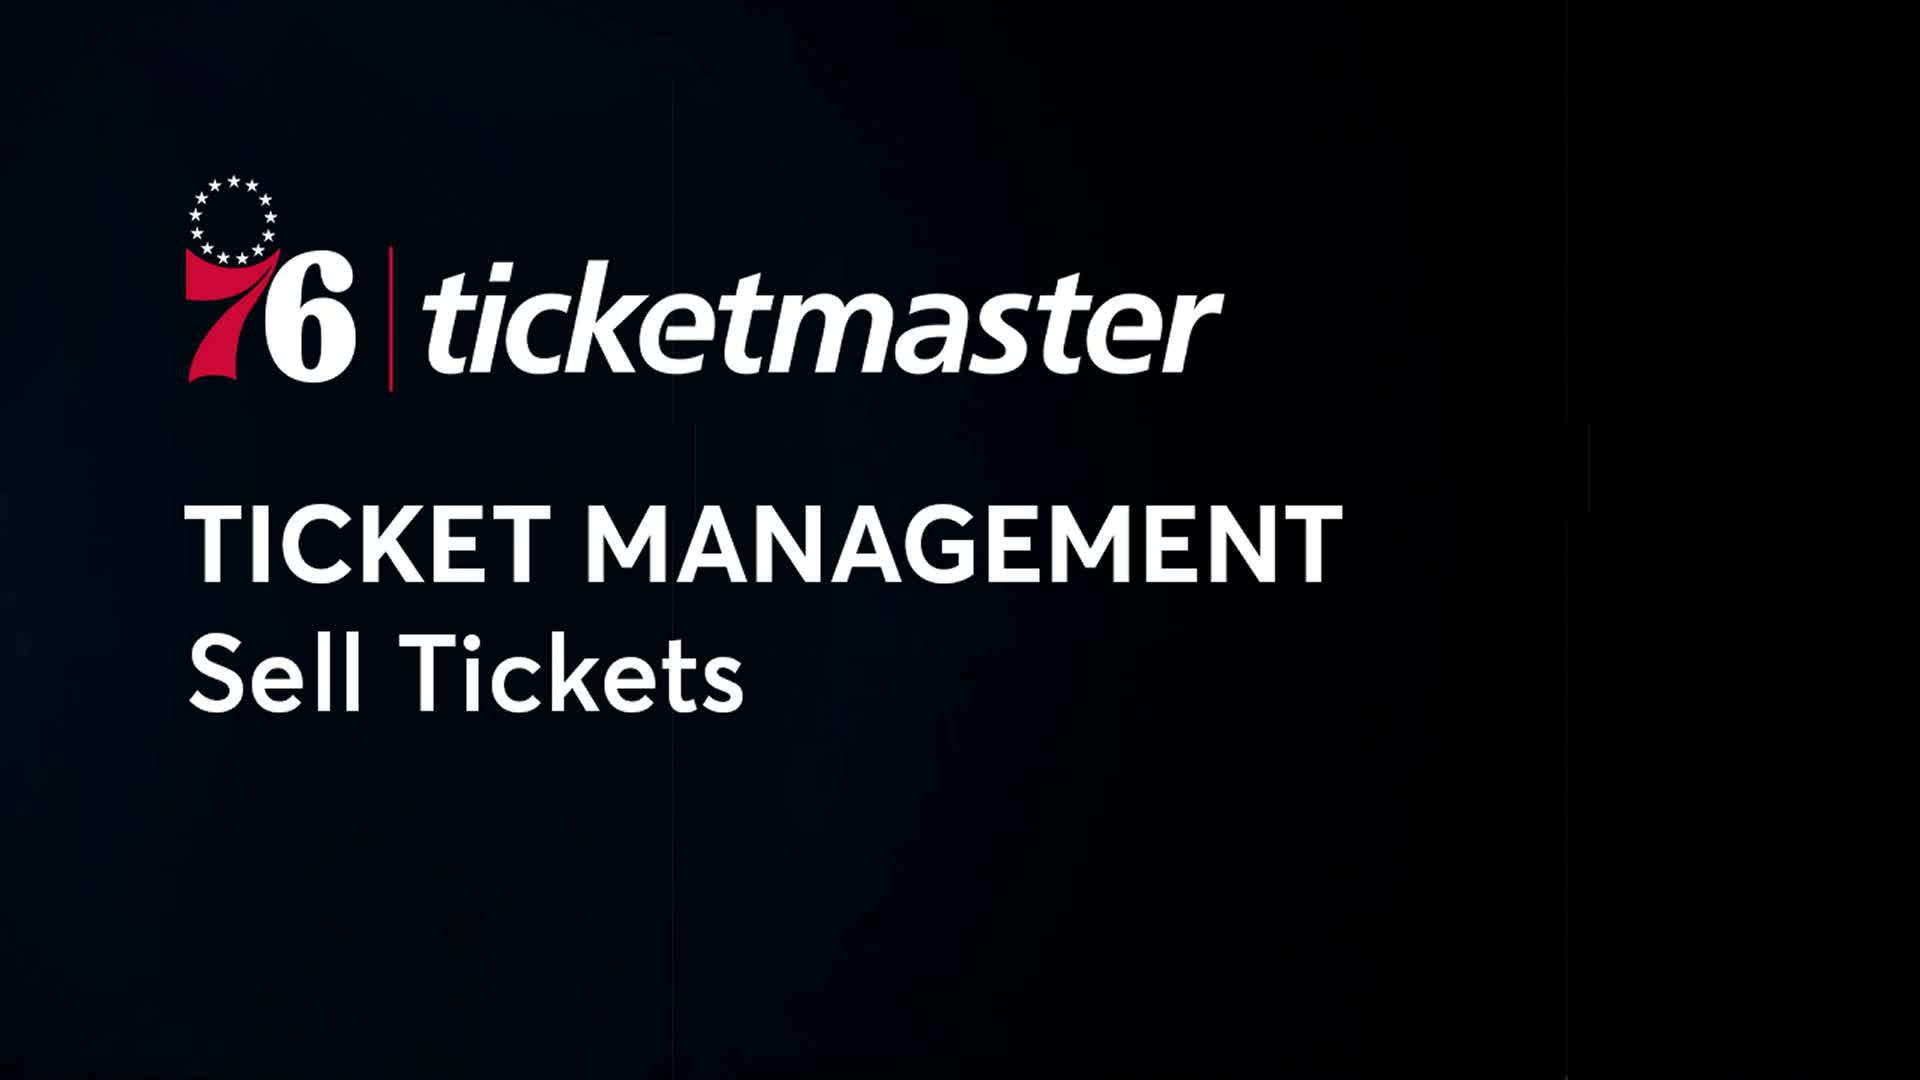 How Do I Sell Tickets on Ticketmaster?